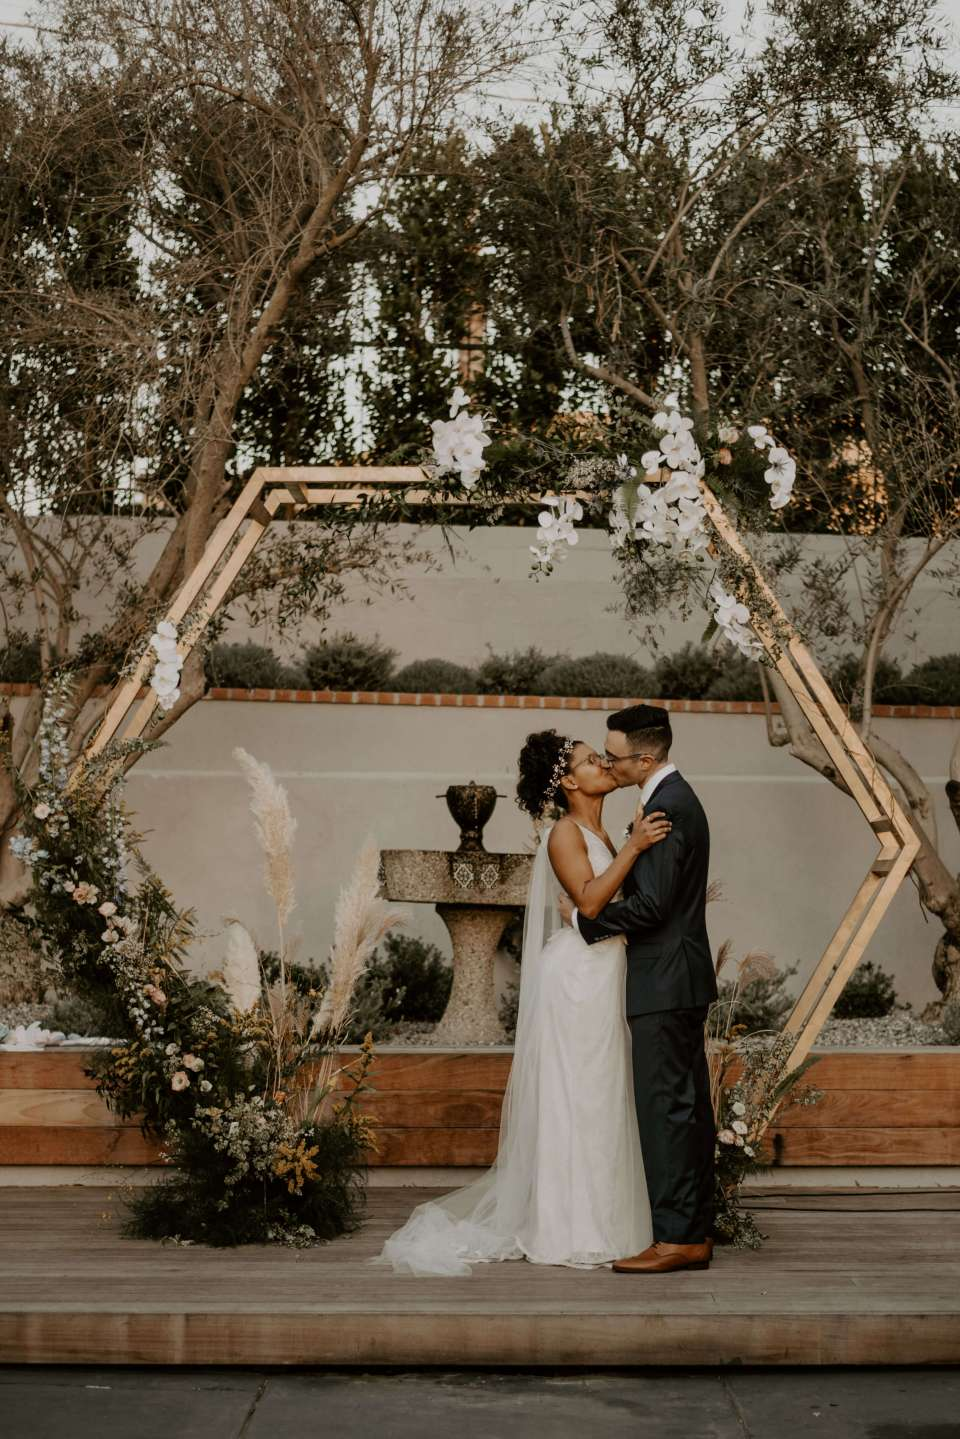 A couple poses in front of a geometric arch on their wedding day, planned by Amethyst Event Productions, who shares their key questions to ask a wedding planner in this post.